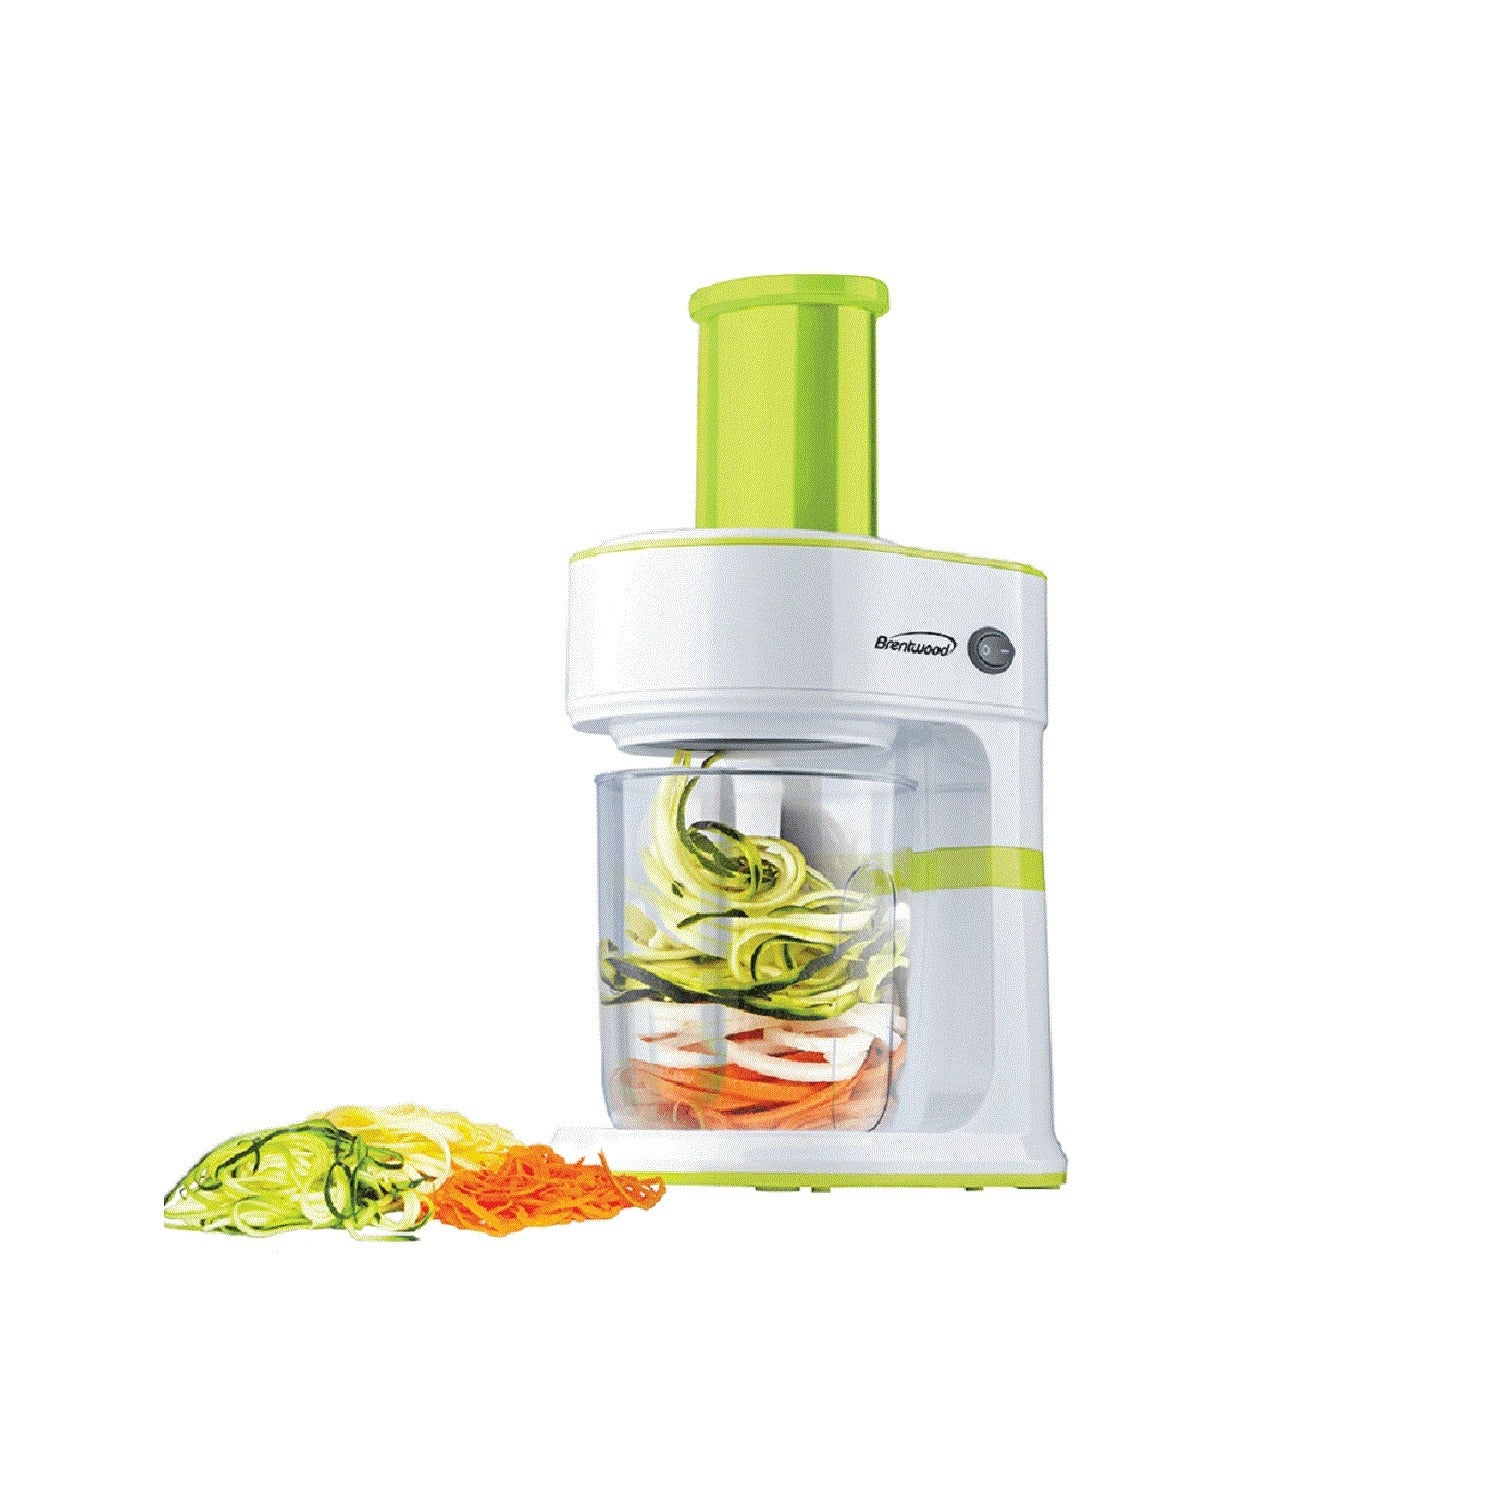 Brentwood 5 Cup Electric Vegetable Spiralizer And Slicer Overstock 20192575